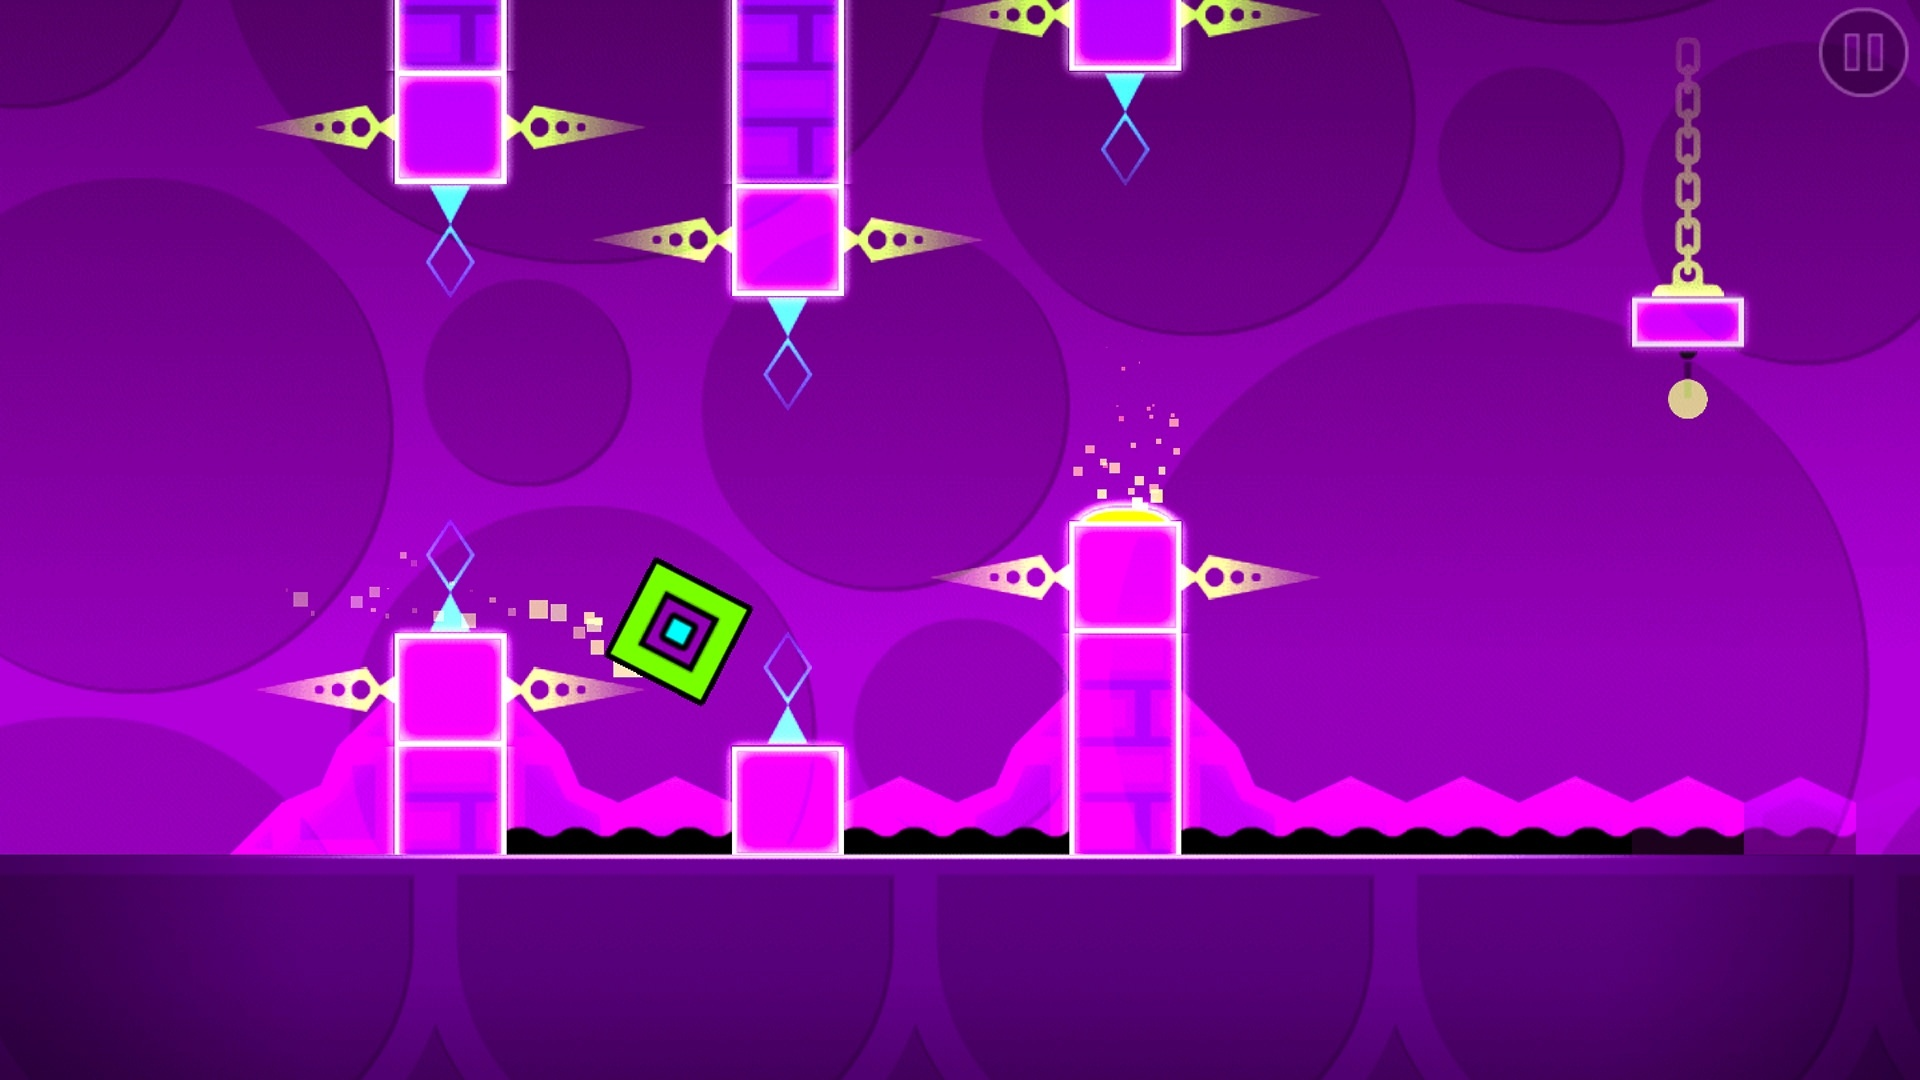 Geometry Dash Backgrounds